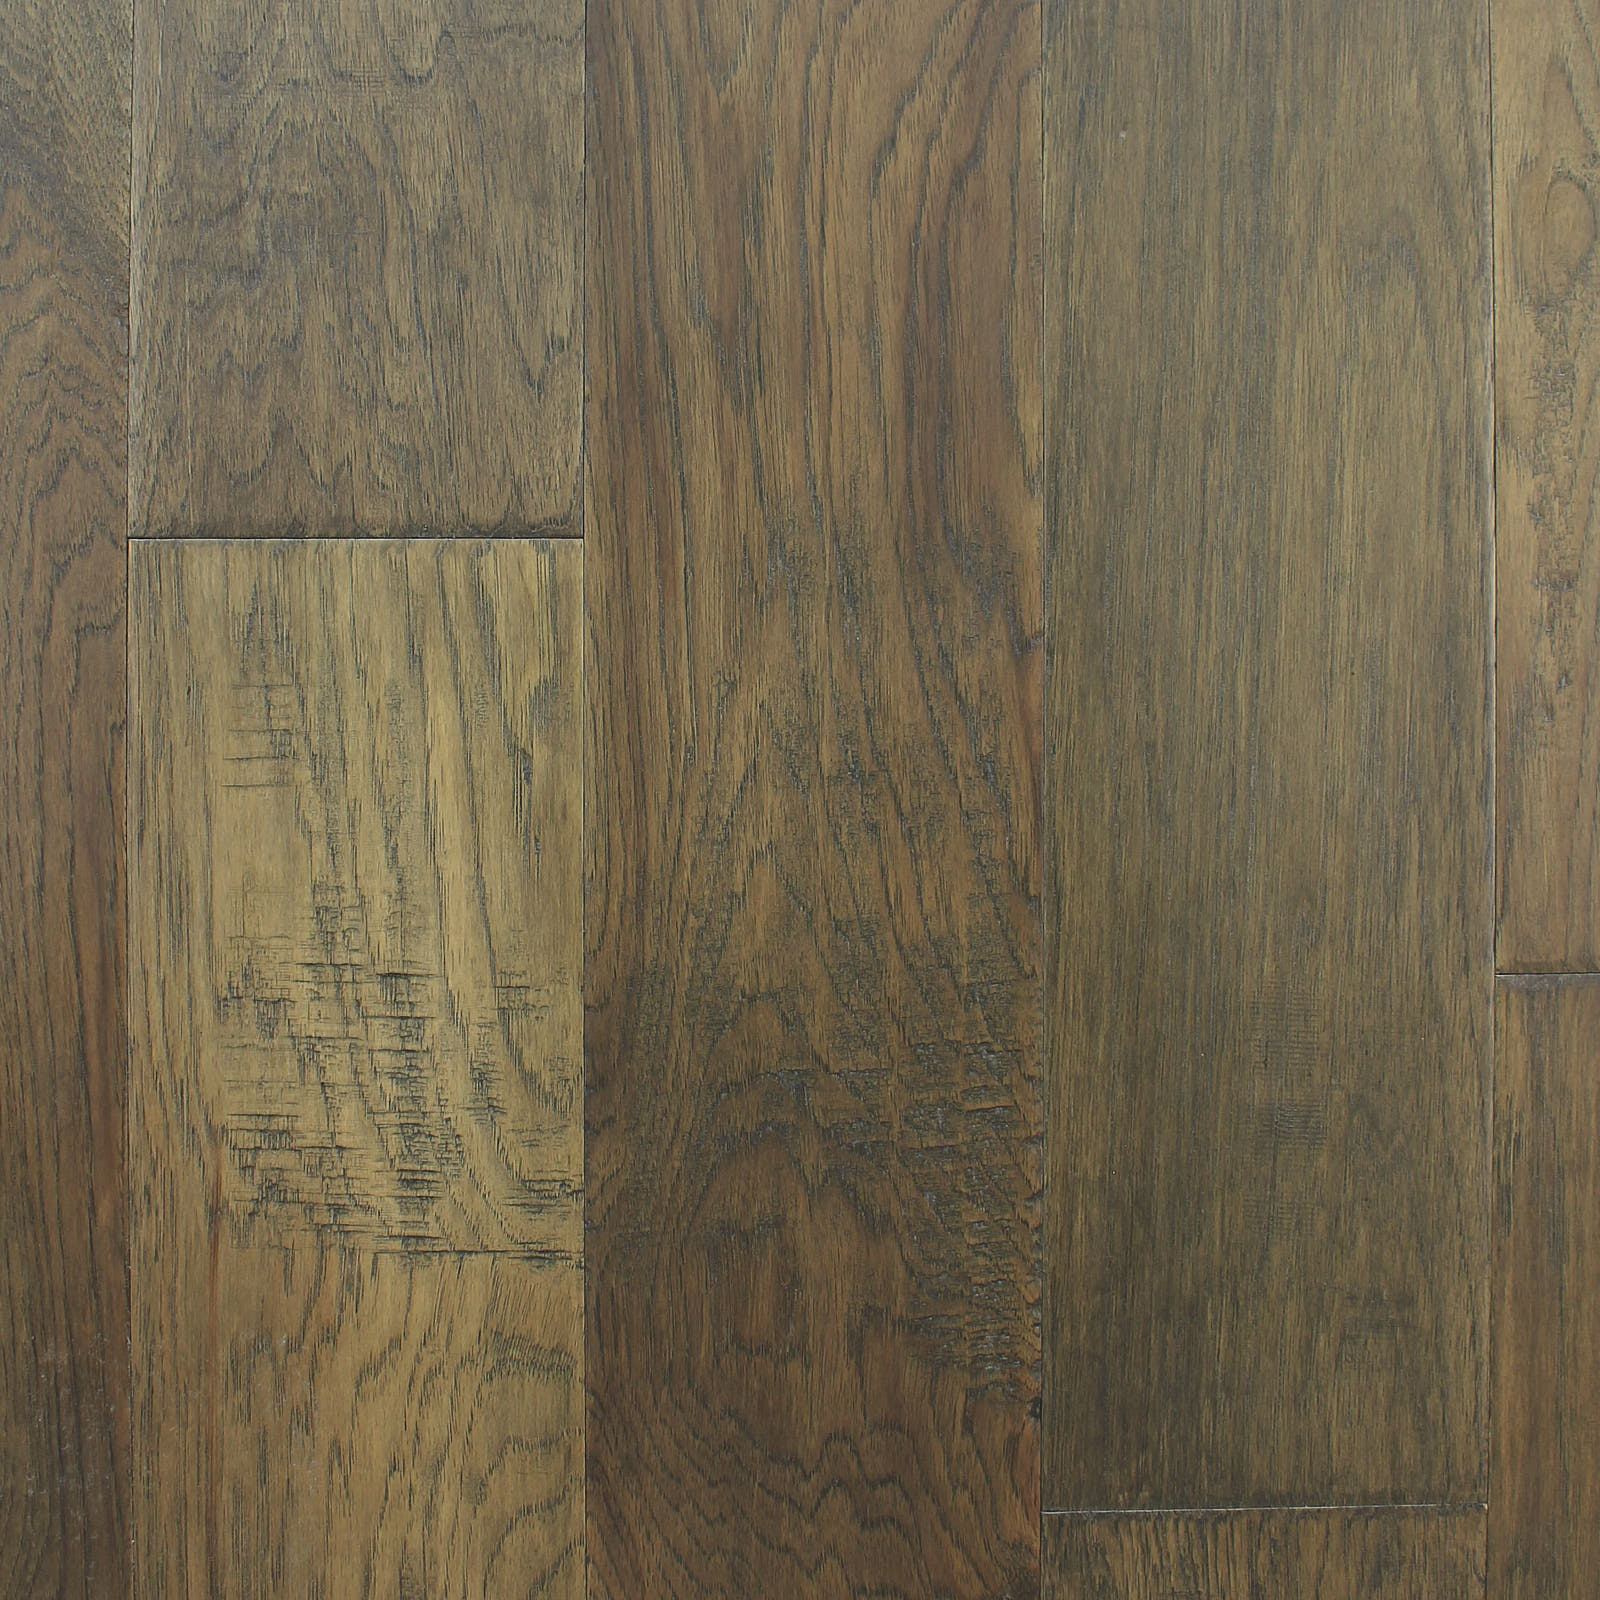 Wrangler Plank Sawbuck Engineered Hardwood Flooring